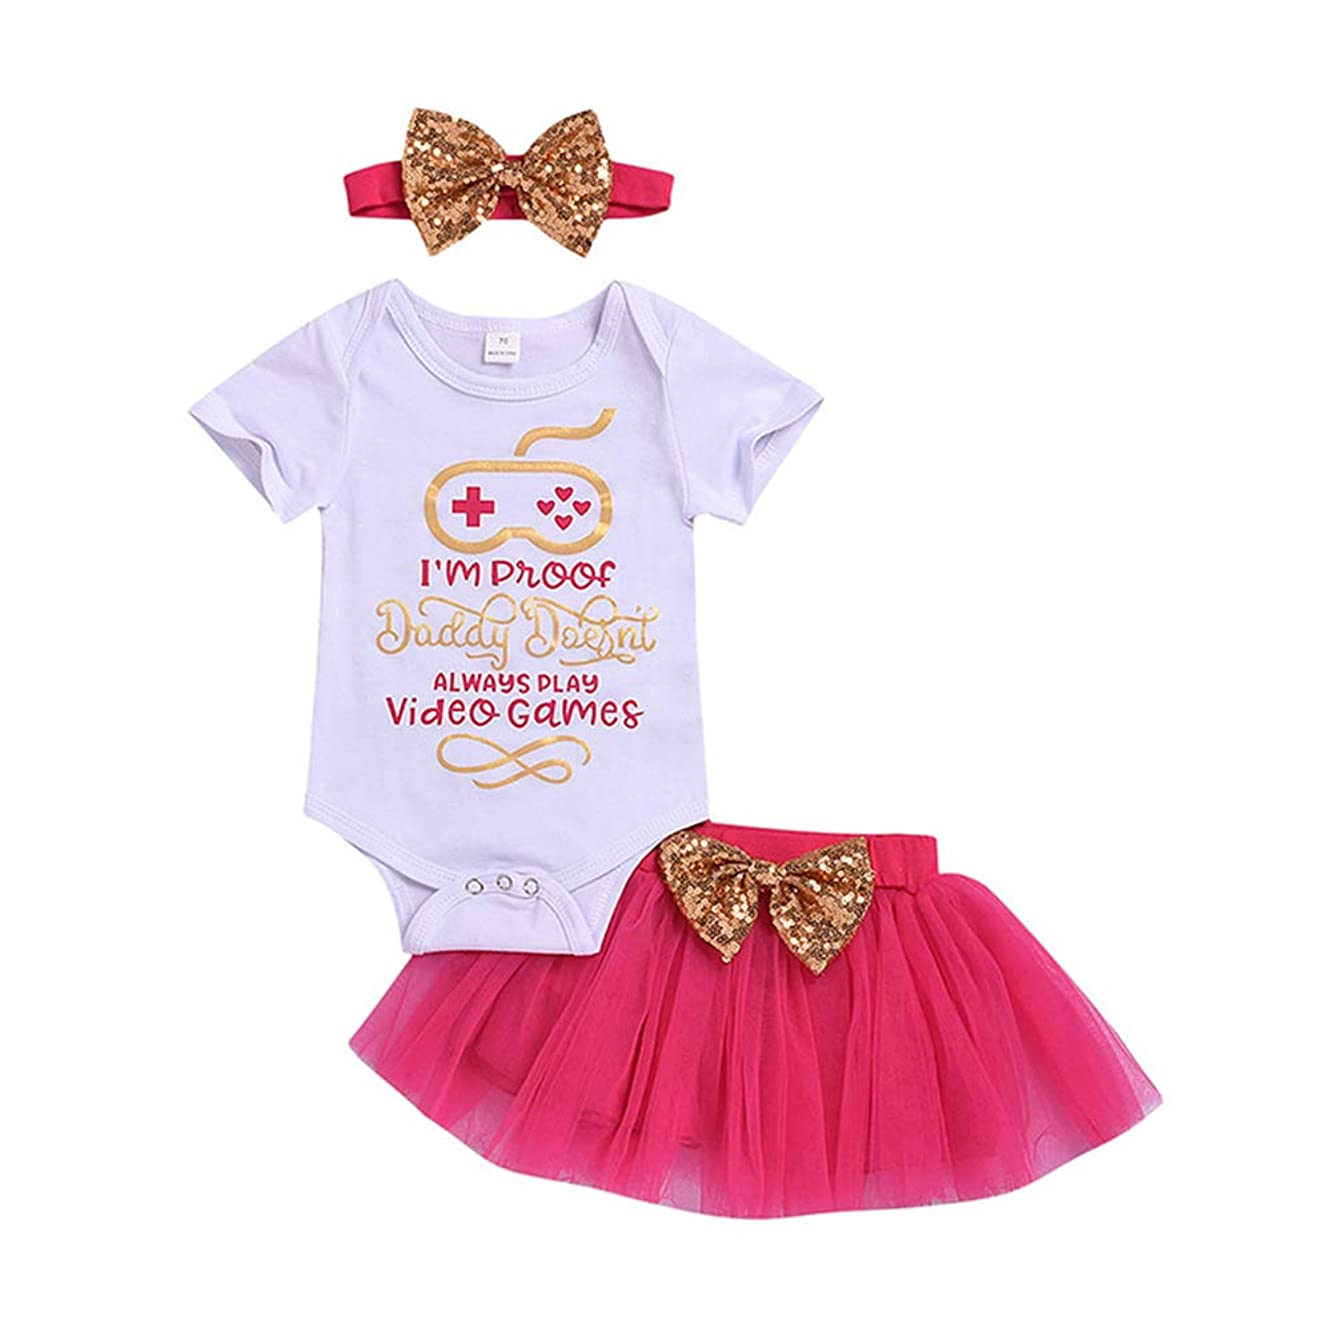 3pcs Infant Baby Girls Funny Letter Printed Rompers Bowknot Tulle Tutu Skirt Headband Summer Outfit Set